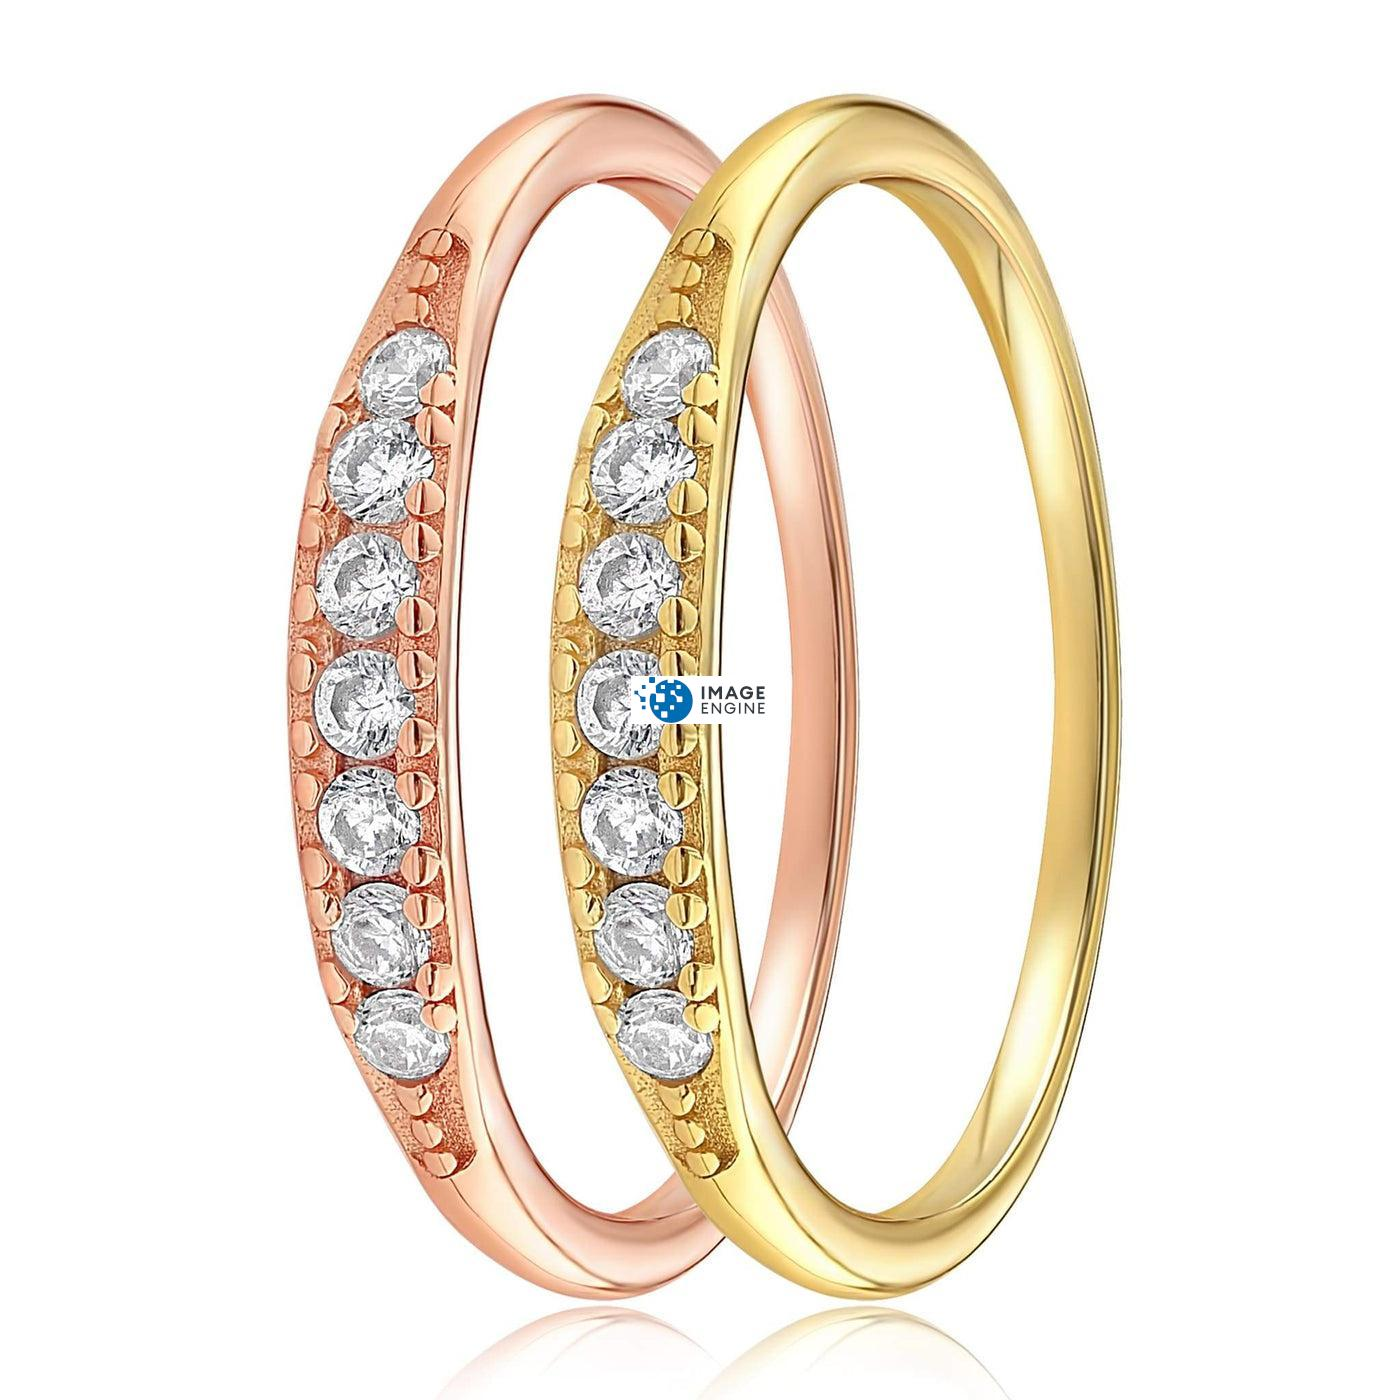 Kathleen Stack Ring - Side by Side - 18K Yellow Gold Vermeil and 18K Rose Gold Vermeil